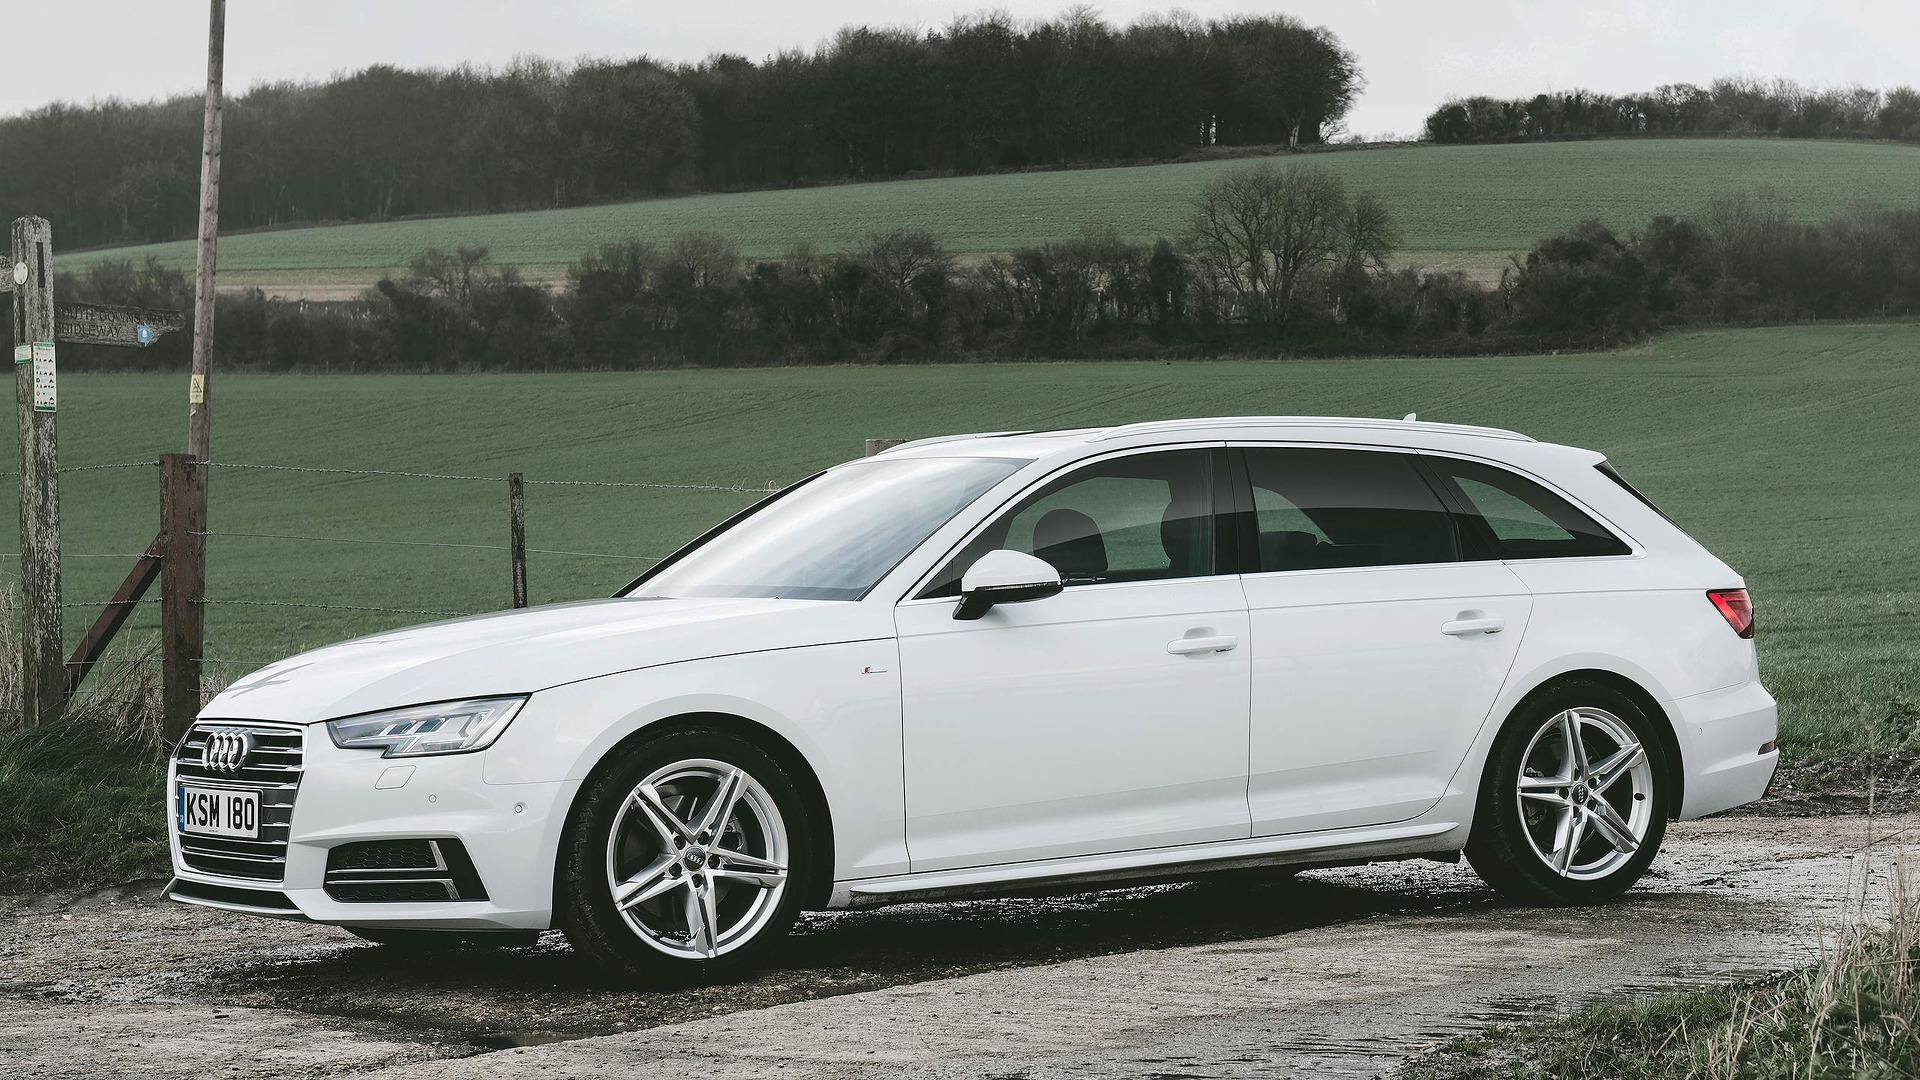 price initial reports audi tdi technik bhp team durch vorsprung forum ownership drives test